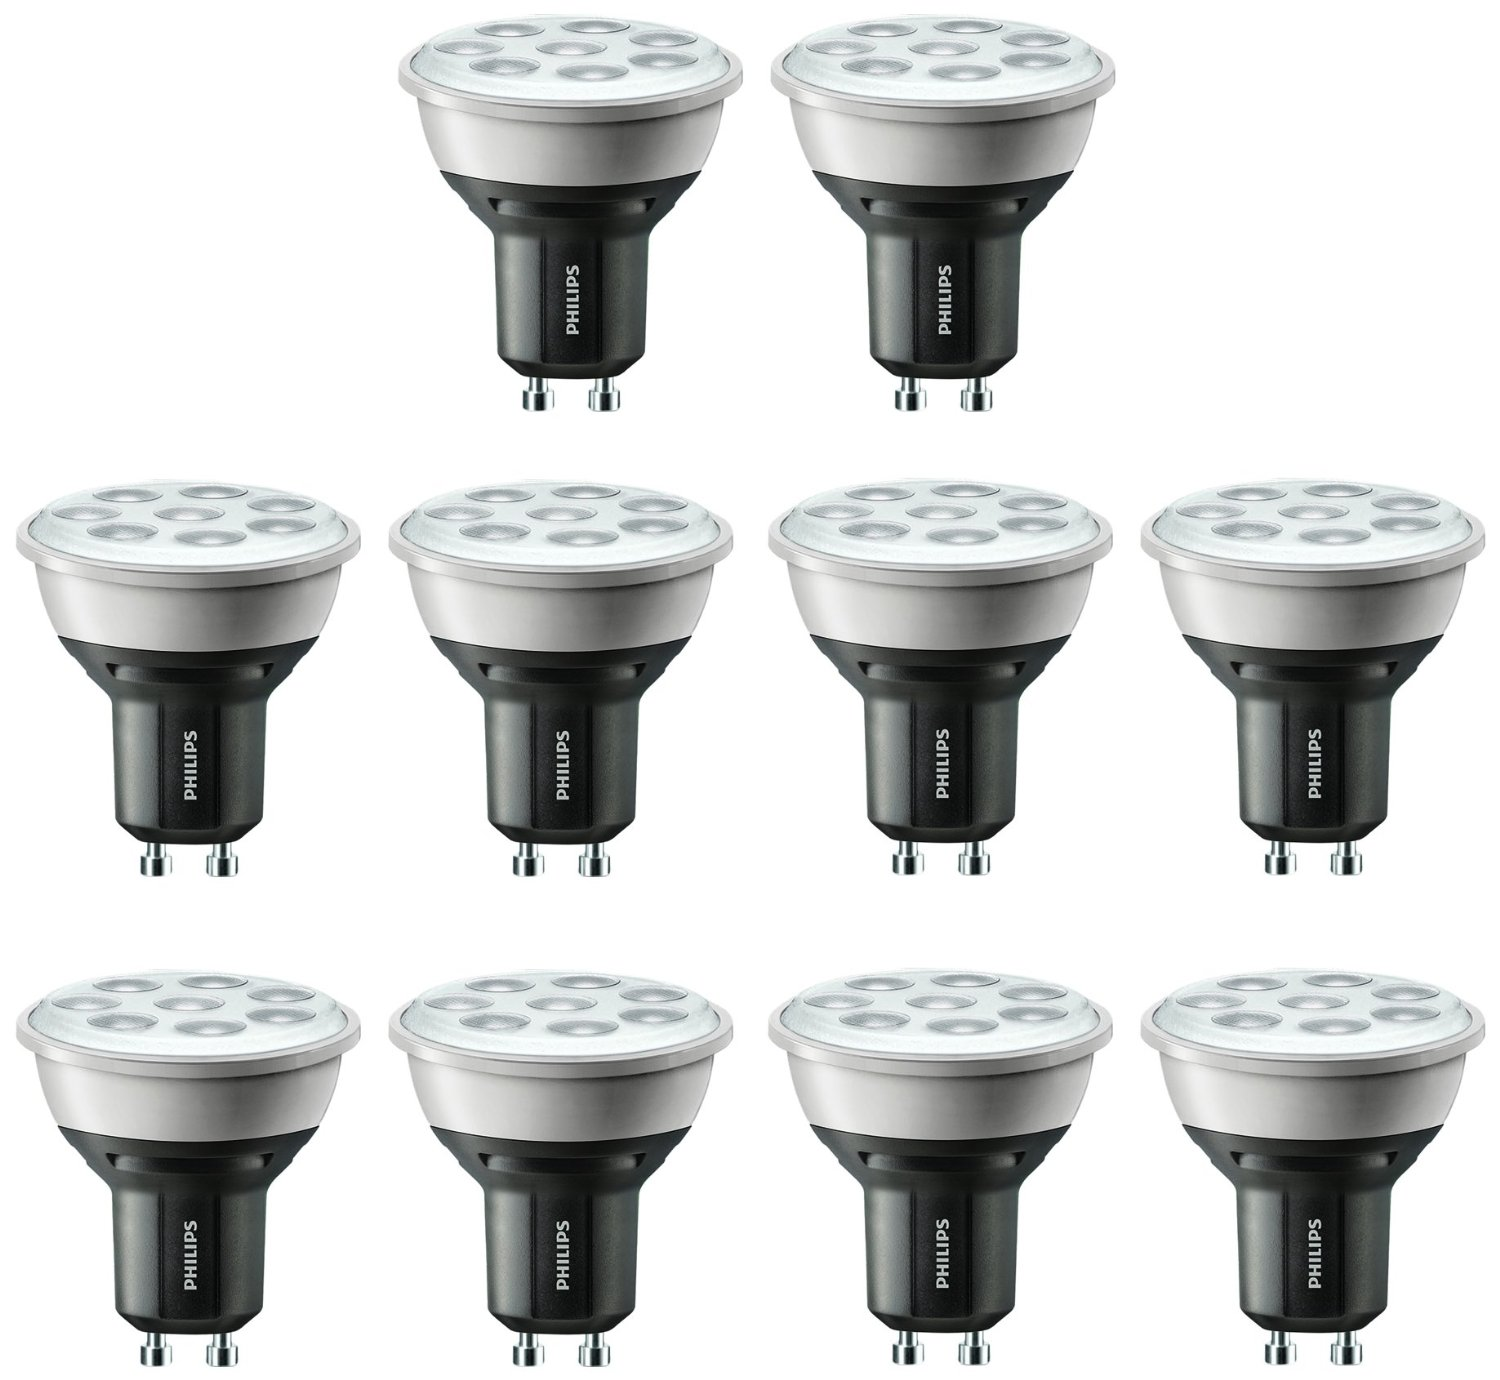 10x philips gu10 5 3w 50w equiv mv master led spot 2700k light bulb warm white ebay. Black Bedroom Furniture Sets. Home Design Ideas